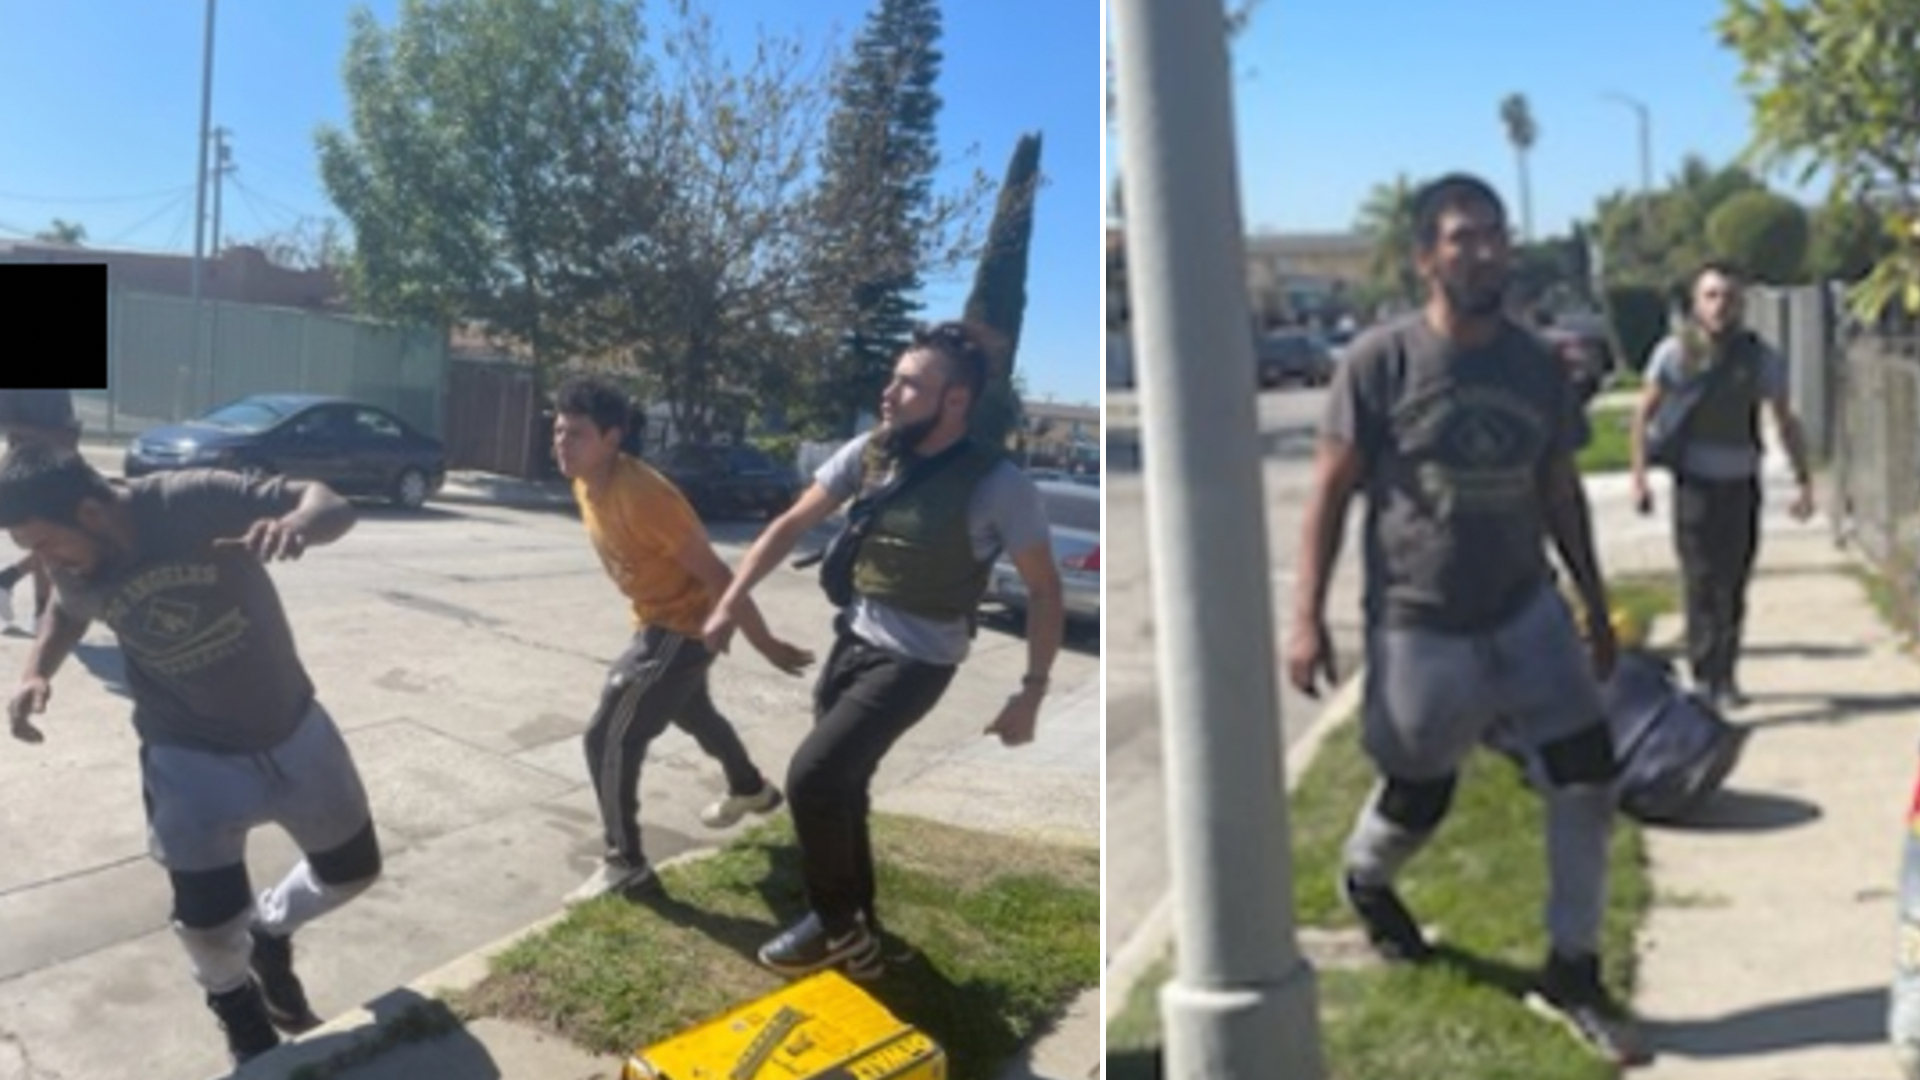 Los Angeles police released these images Feb. 25, 2021, that investigators say show three men leaving the scene of a deadly hit-and-run crash in South Los Angeles on Feb. 24, 2021.